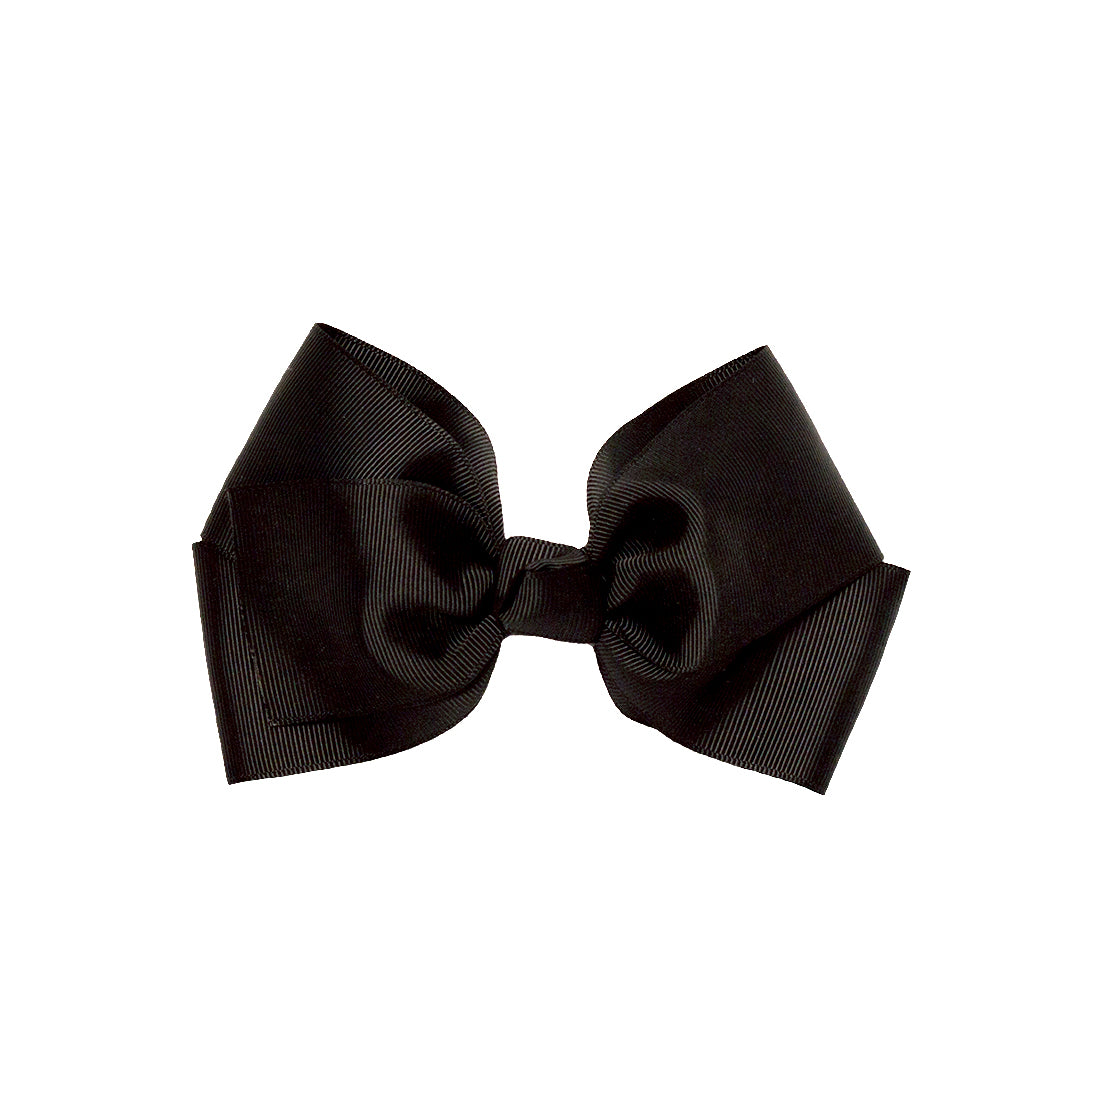 LiveGreek™ Mia® Spirit - Bow Barrette - black color - #MiaKaminski #Mia #MiaBeauty #beauty #hair #lovethis #love #life #woman #HairAccessories #bow #barrette #cheer #dance